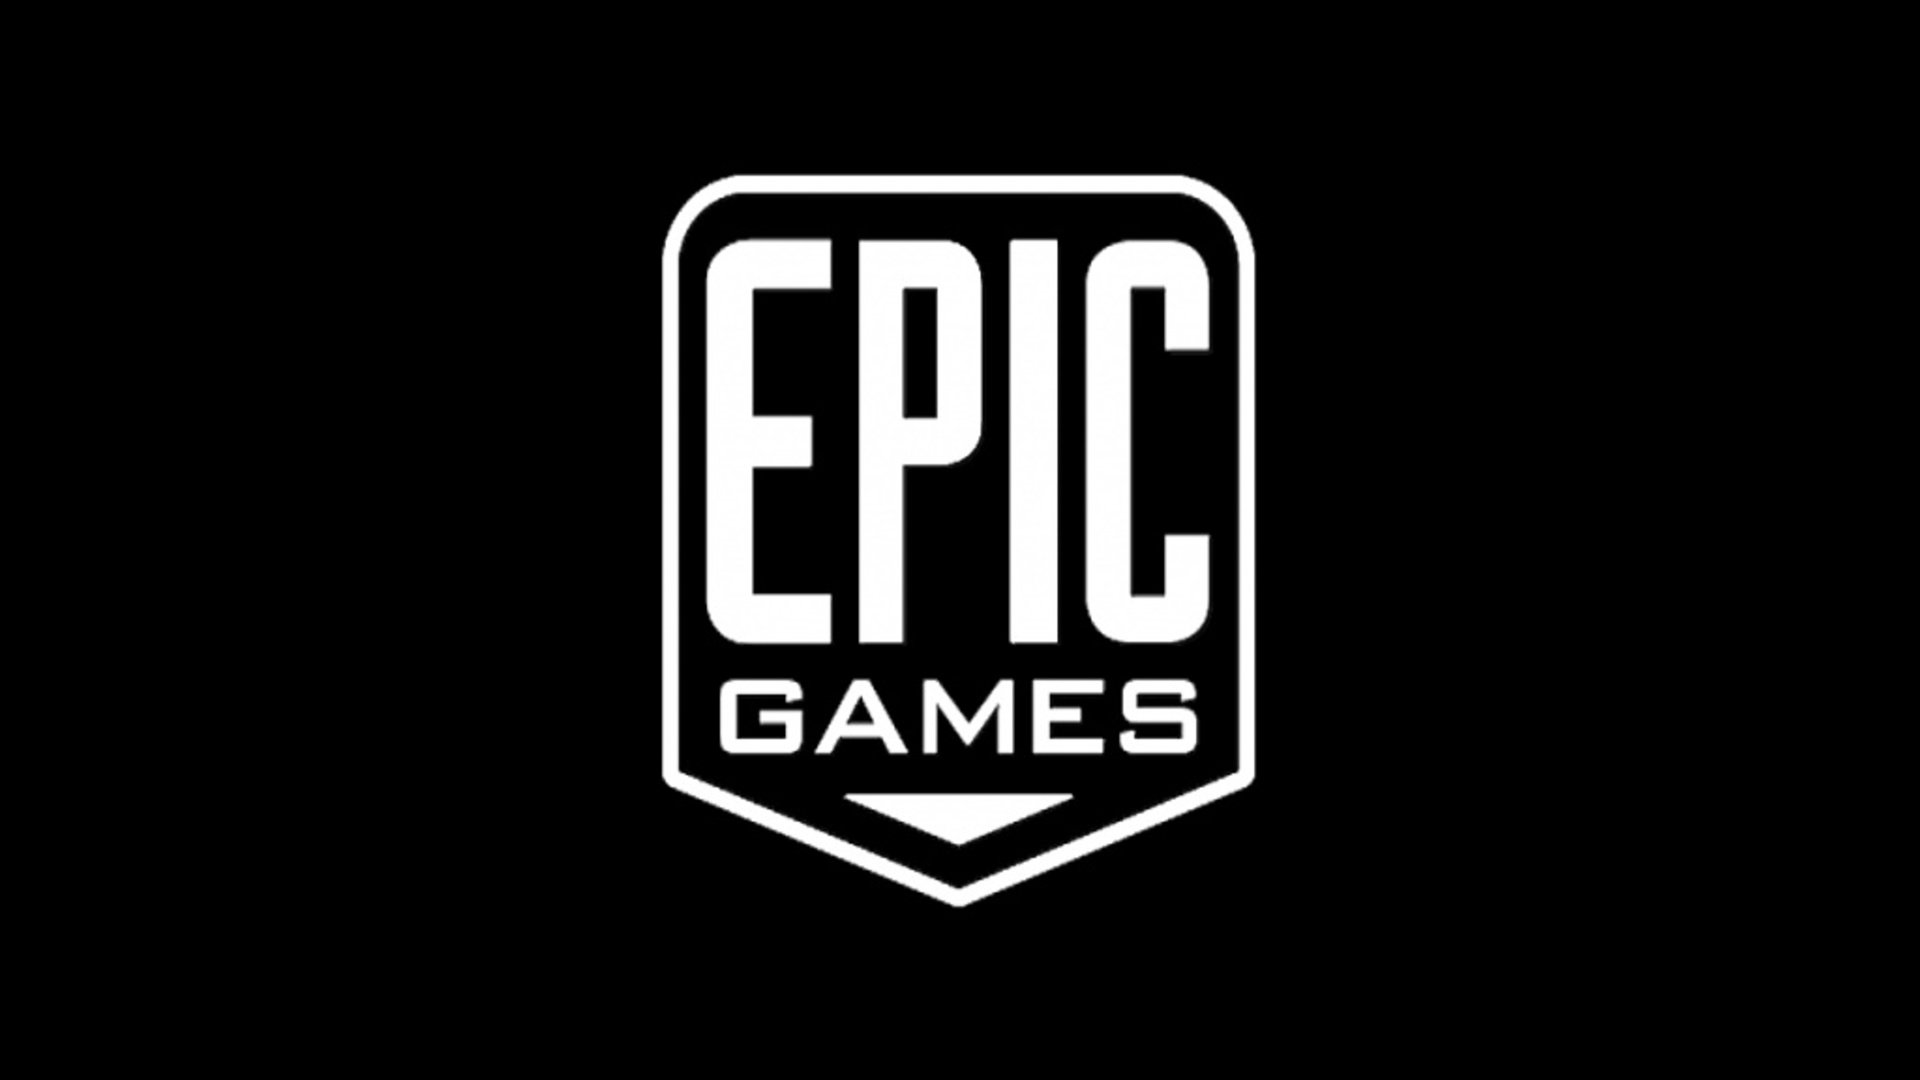 Epic games rachète le studio mediatonic